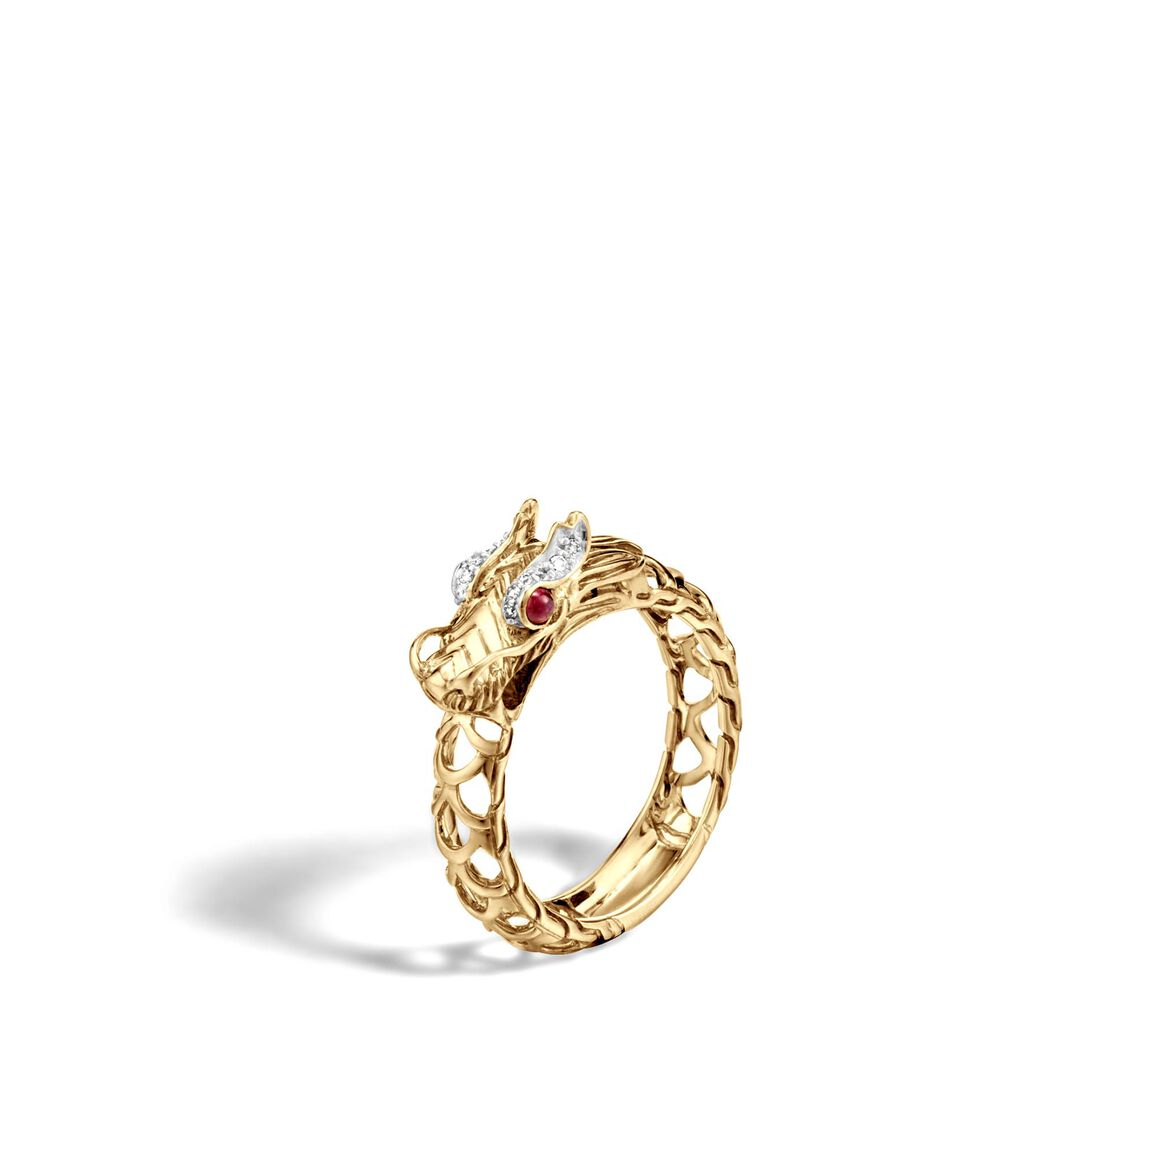 Legends Naga Ring in 18K Gold with Diamonds